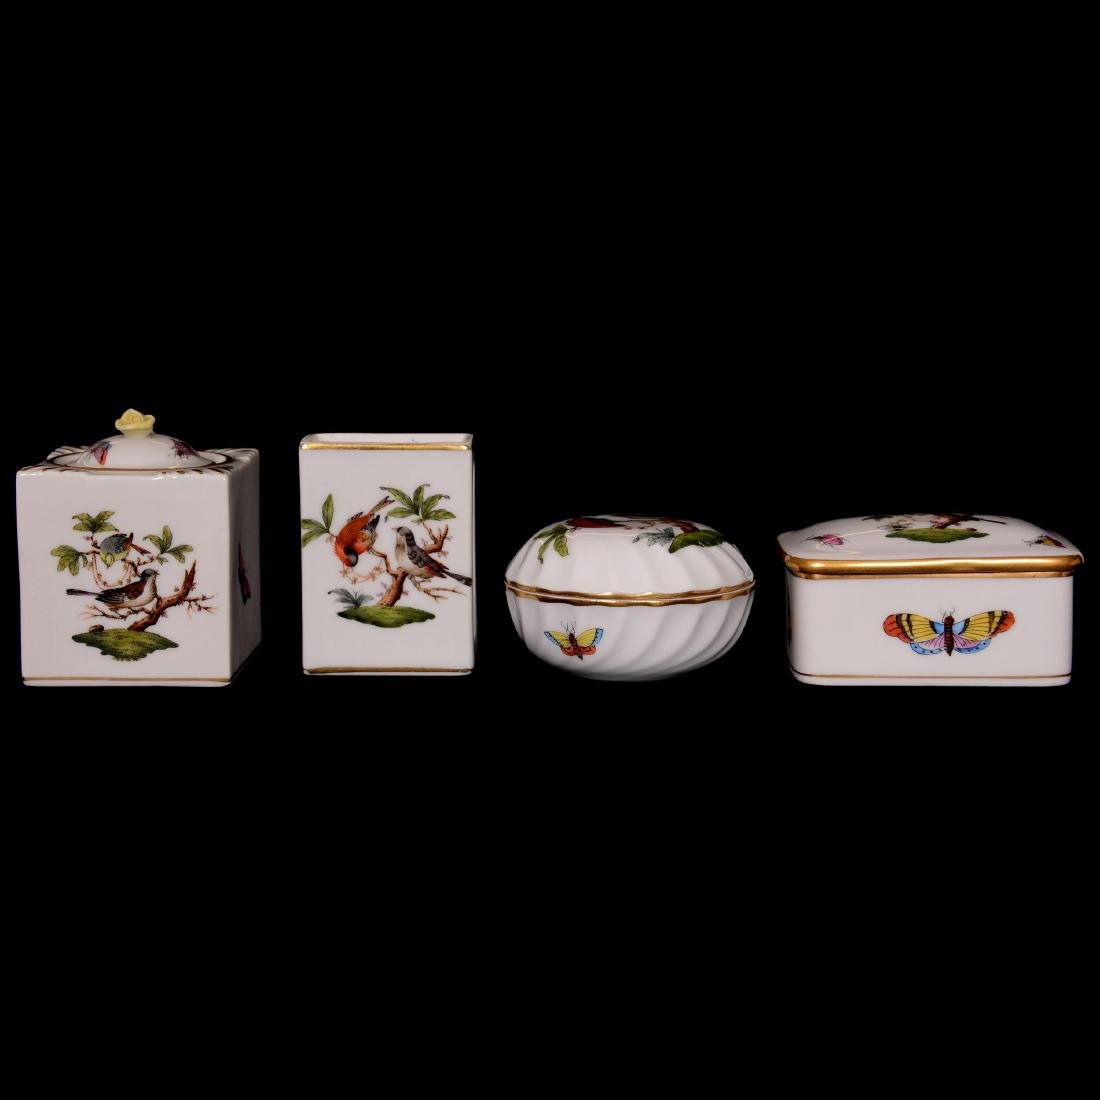 (4) Herend Hungary Porcelain Hand Painted Items